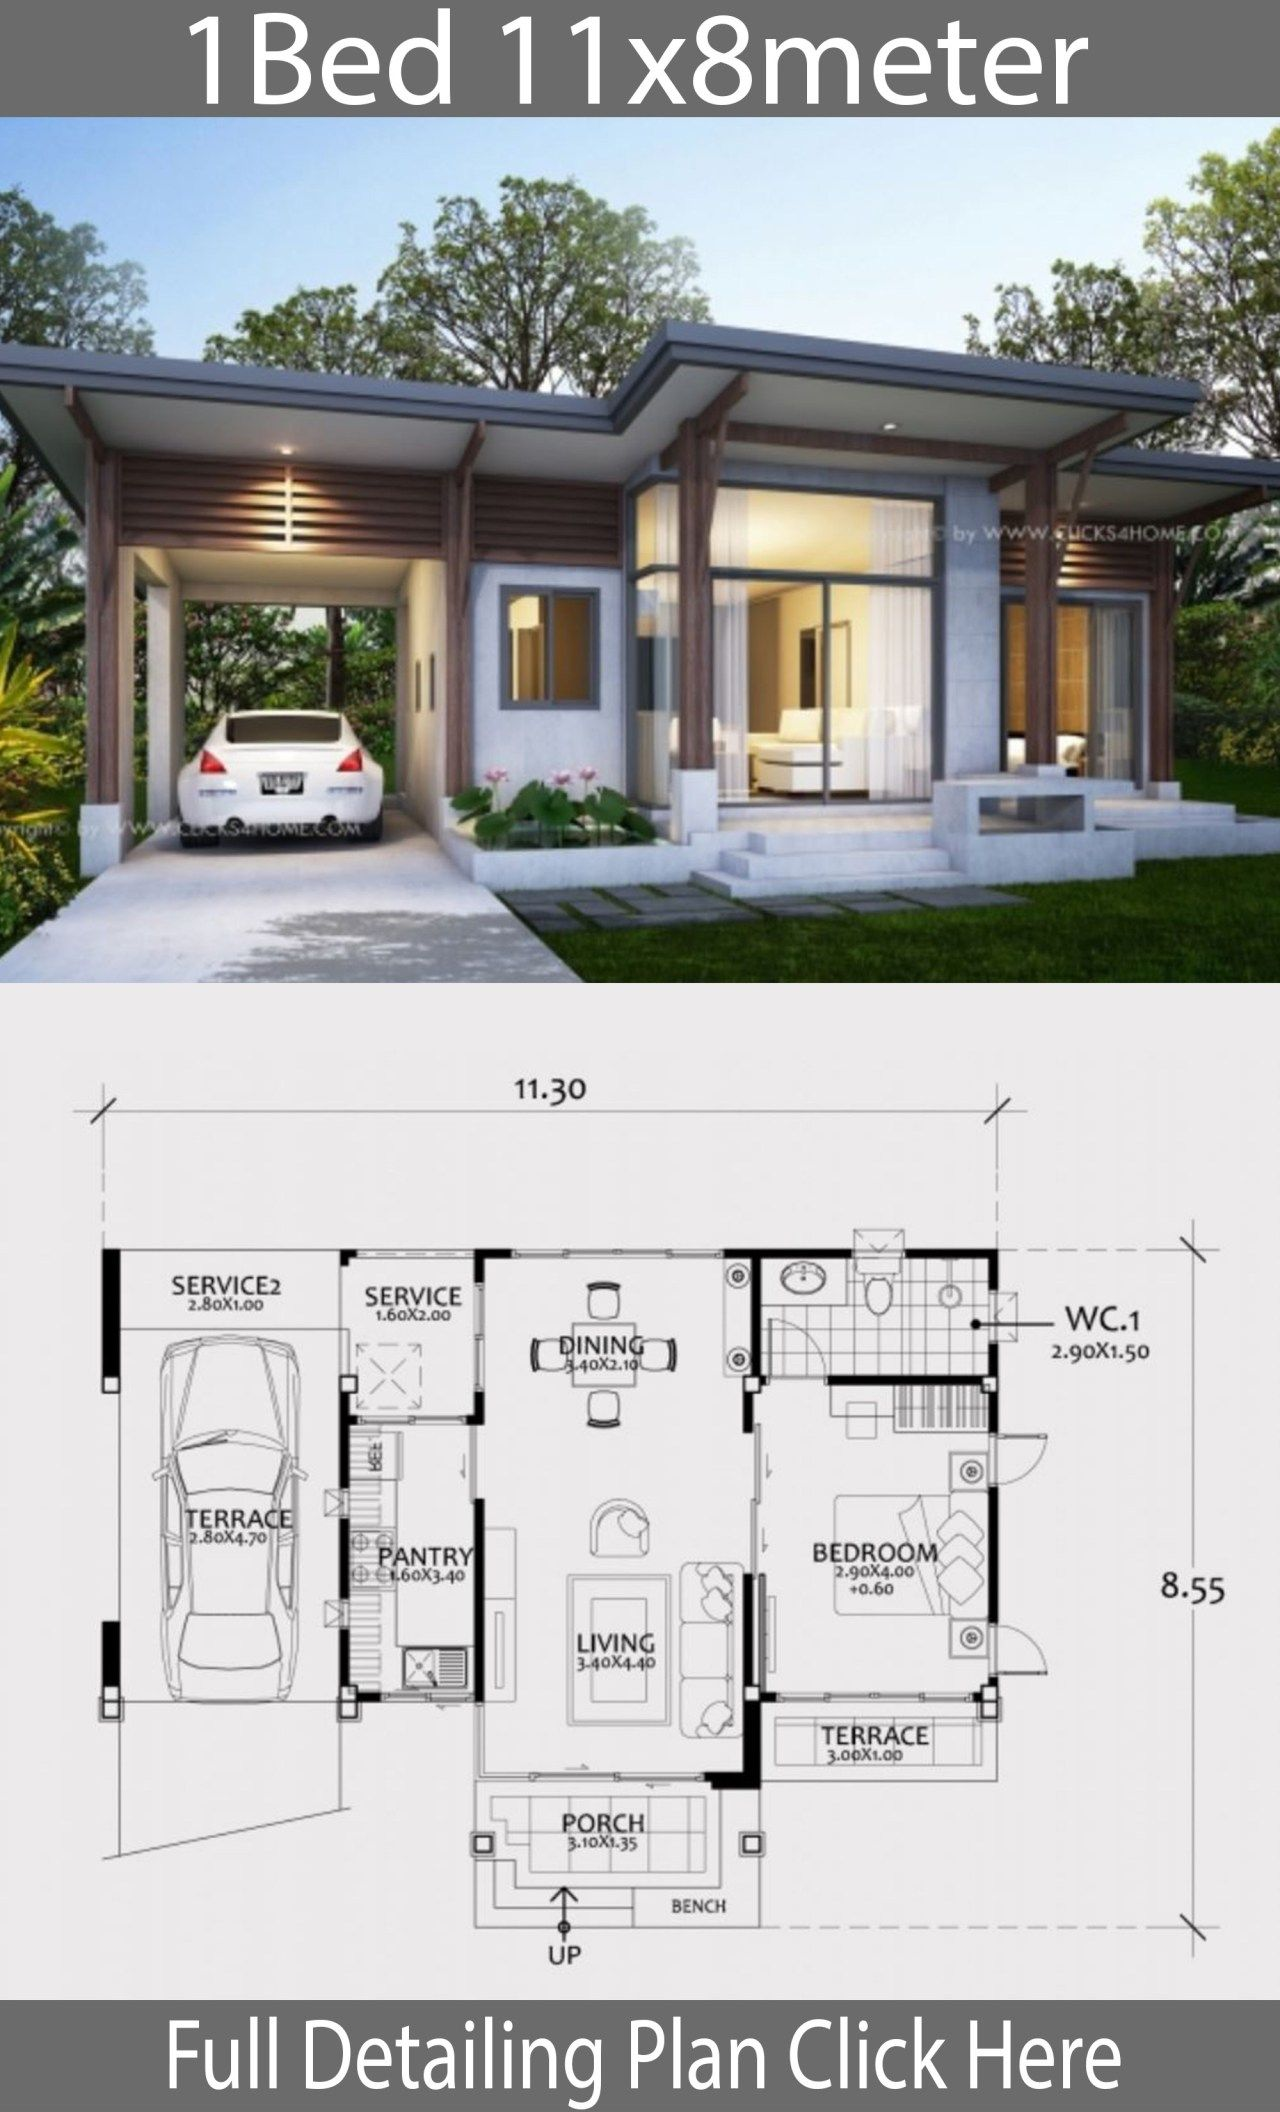 Home Design Plan 11x8m With One Bedroom Home Ideas Modern Bungalow House Contemporary House Plans Small Modern House Plans